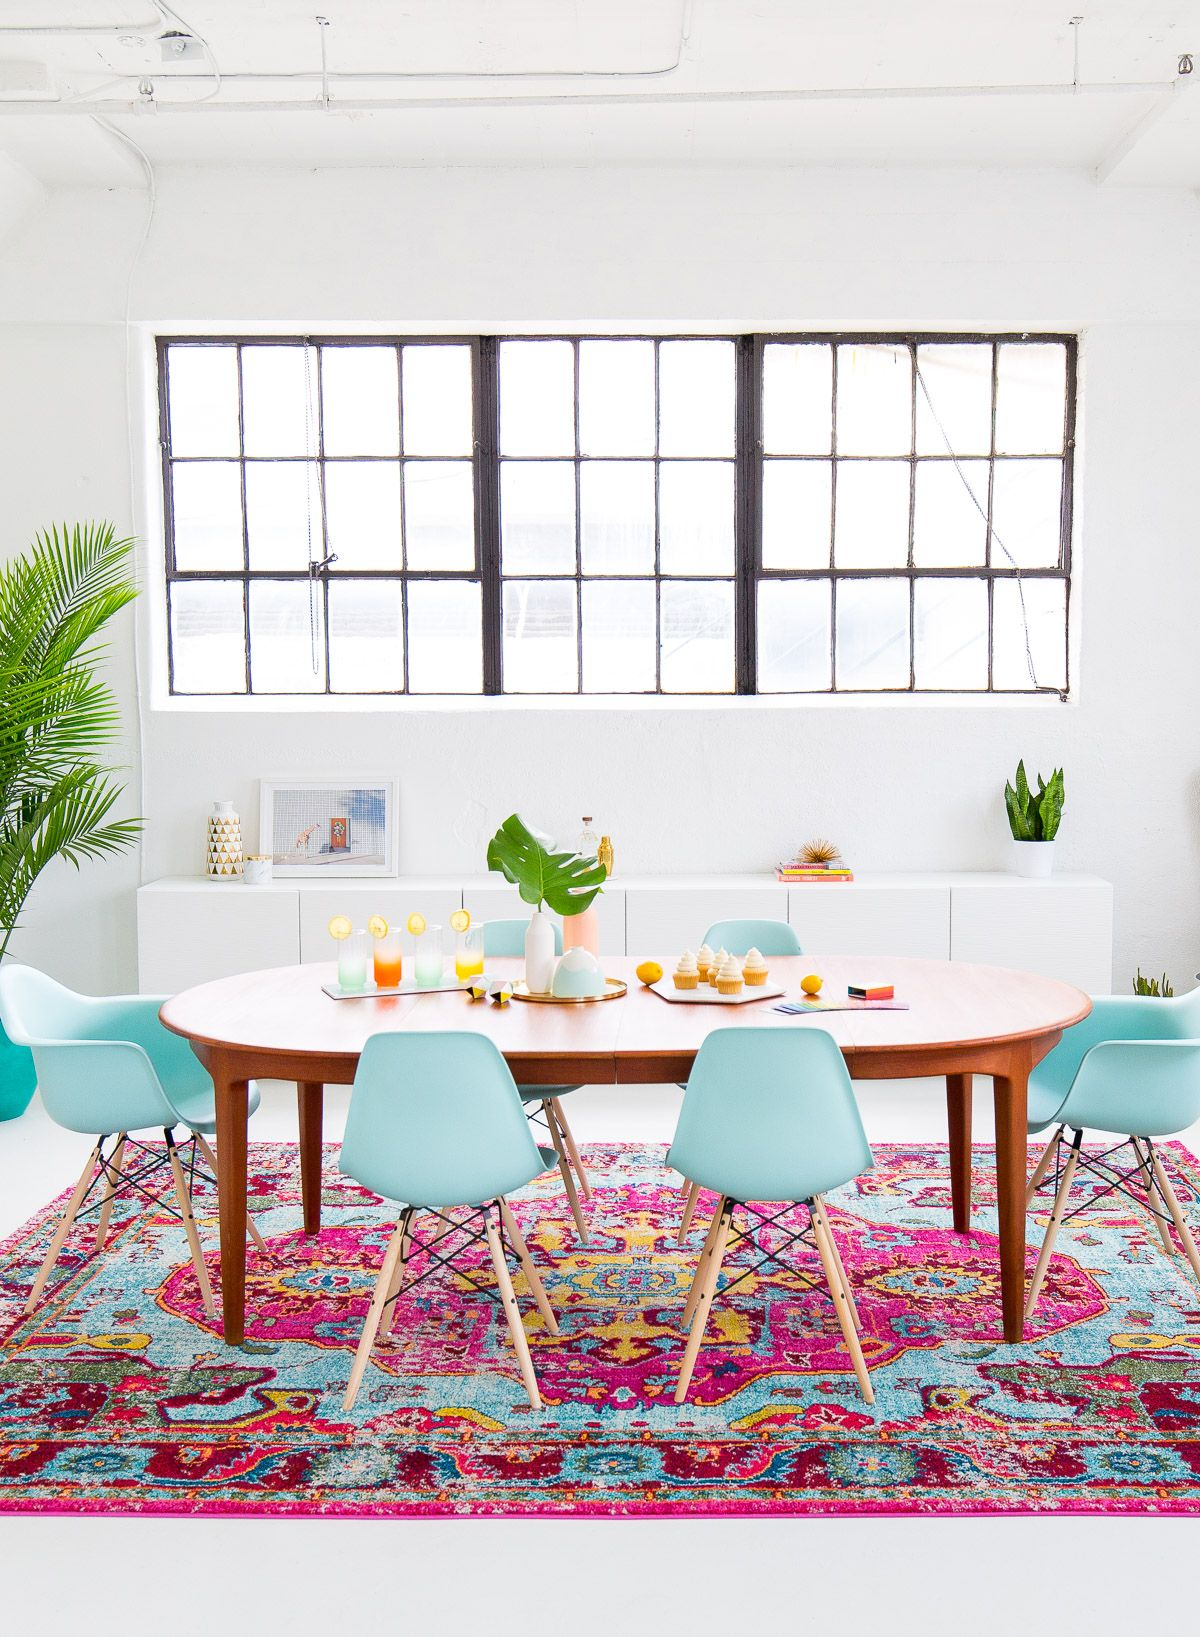 Sharing A Few Simple Ways To Decorate Joyful And Modern Dining Room For Summer Entertaining